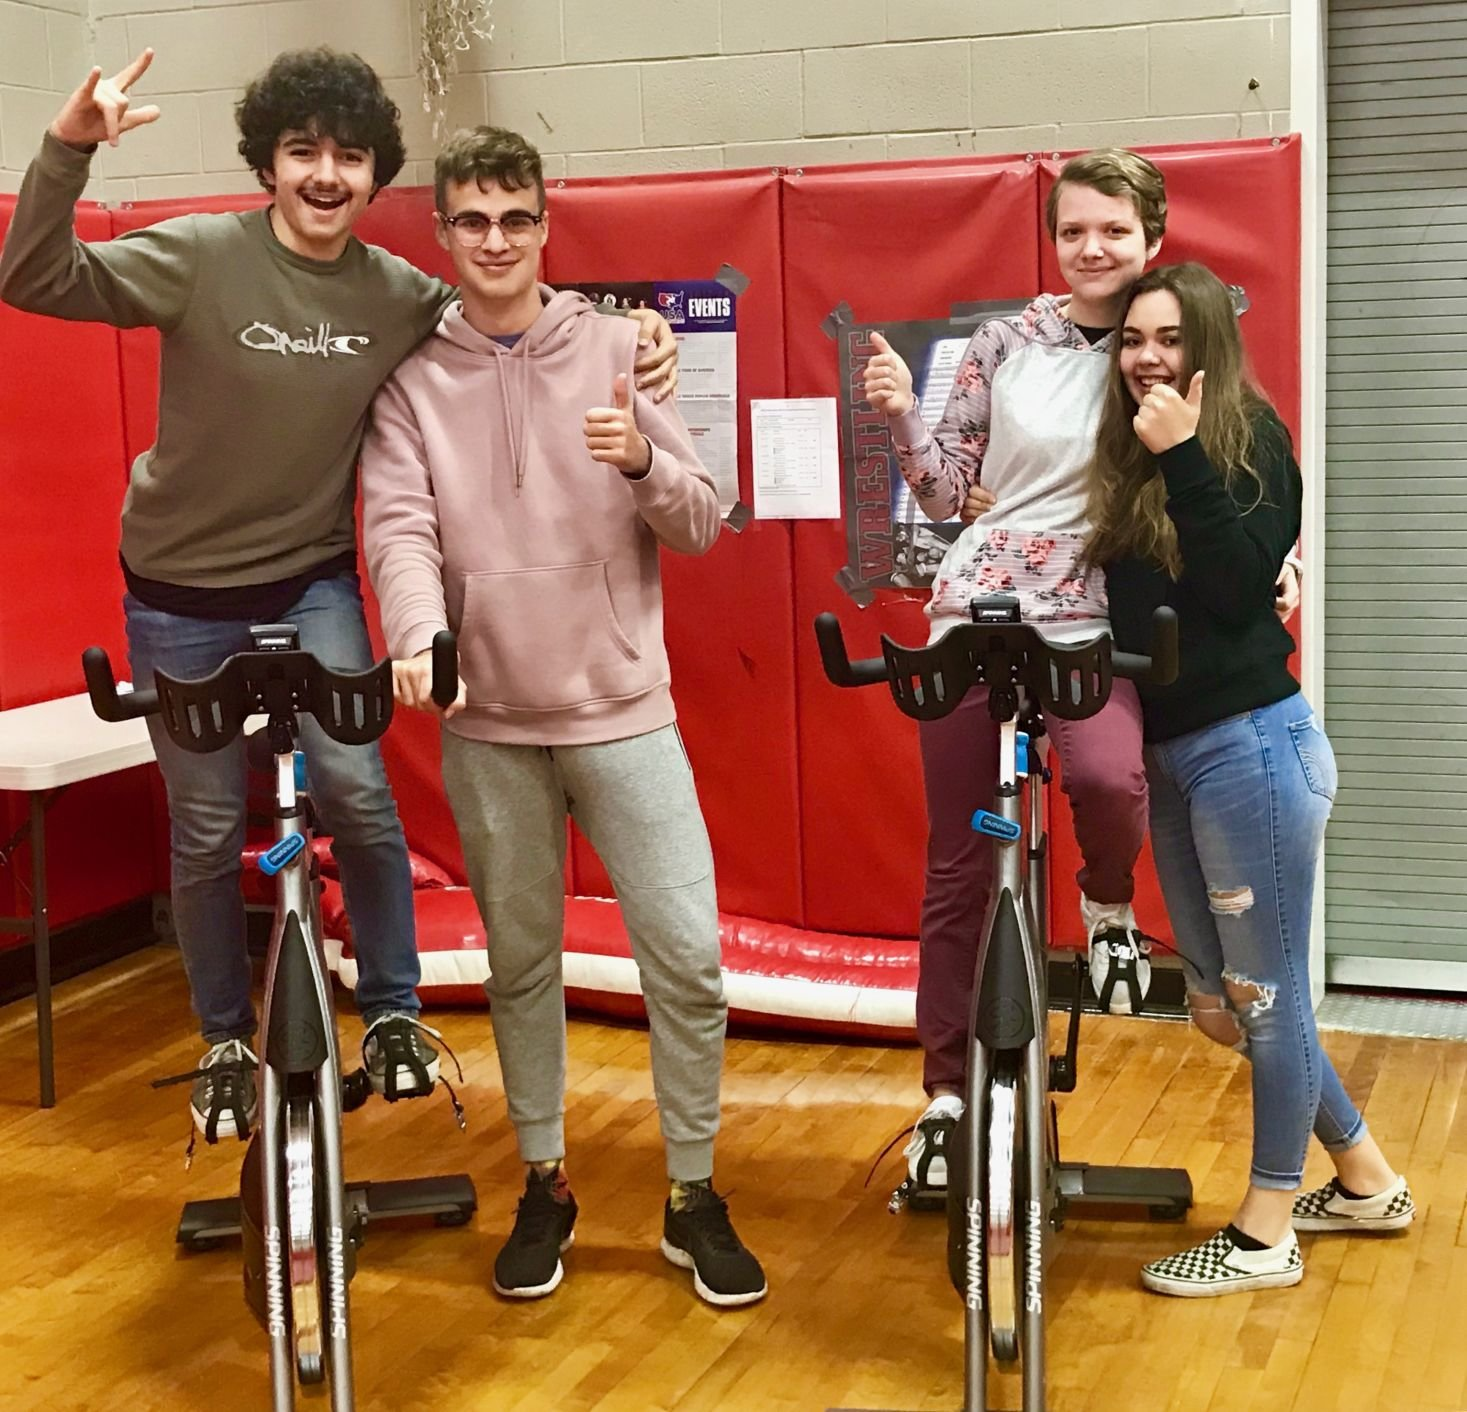 Port Townsend High School students, pictured left to right, Ian Linn-Glasgow, Roland Donanberg, Mackenzie Lake and Carly Rogers, shows off a couple of the spin bikes donated to the spin class offering a healthy outlet for students.